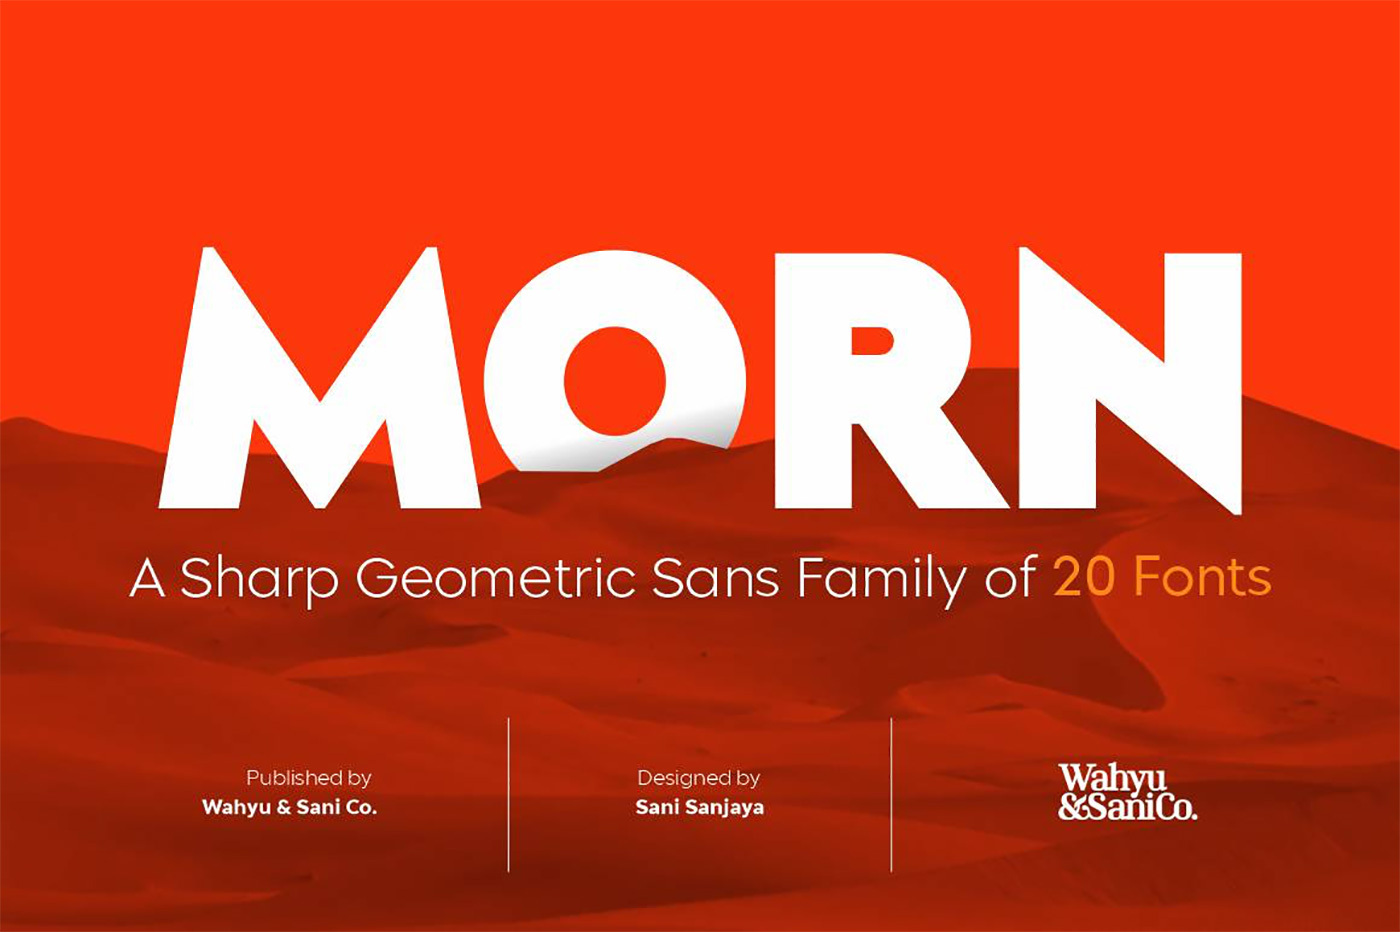 Family of 20 fonts, consisting of 10 weights.